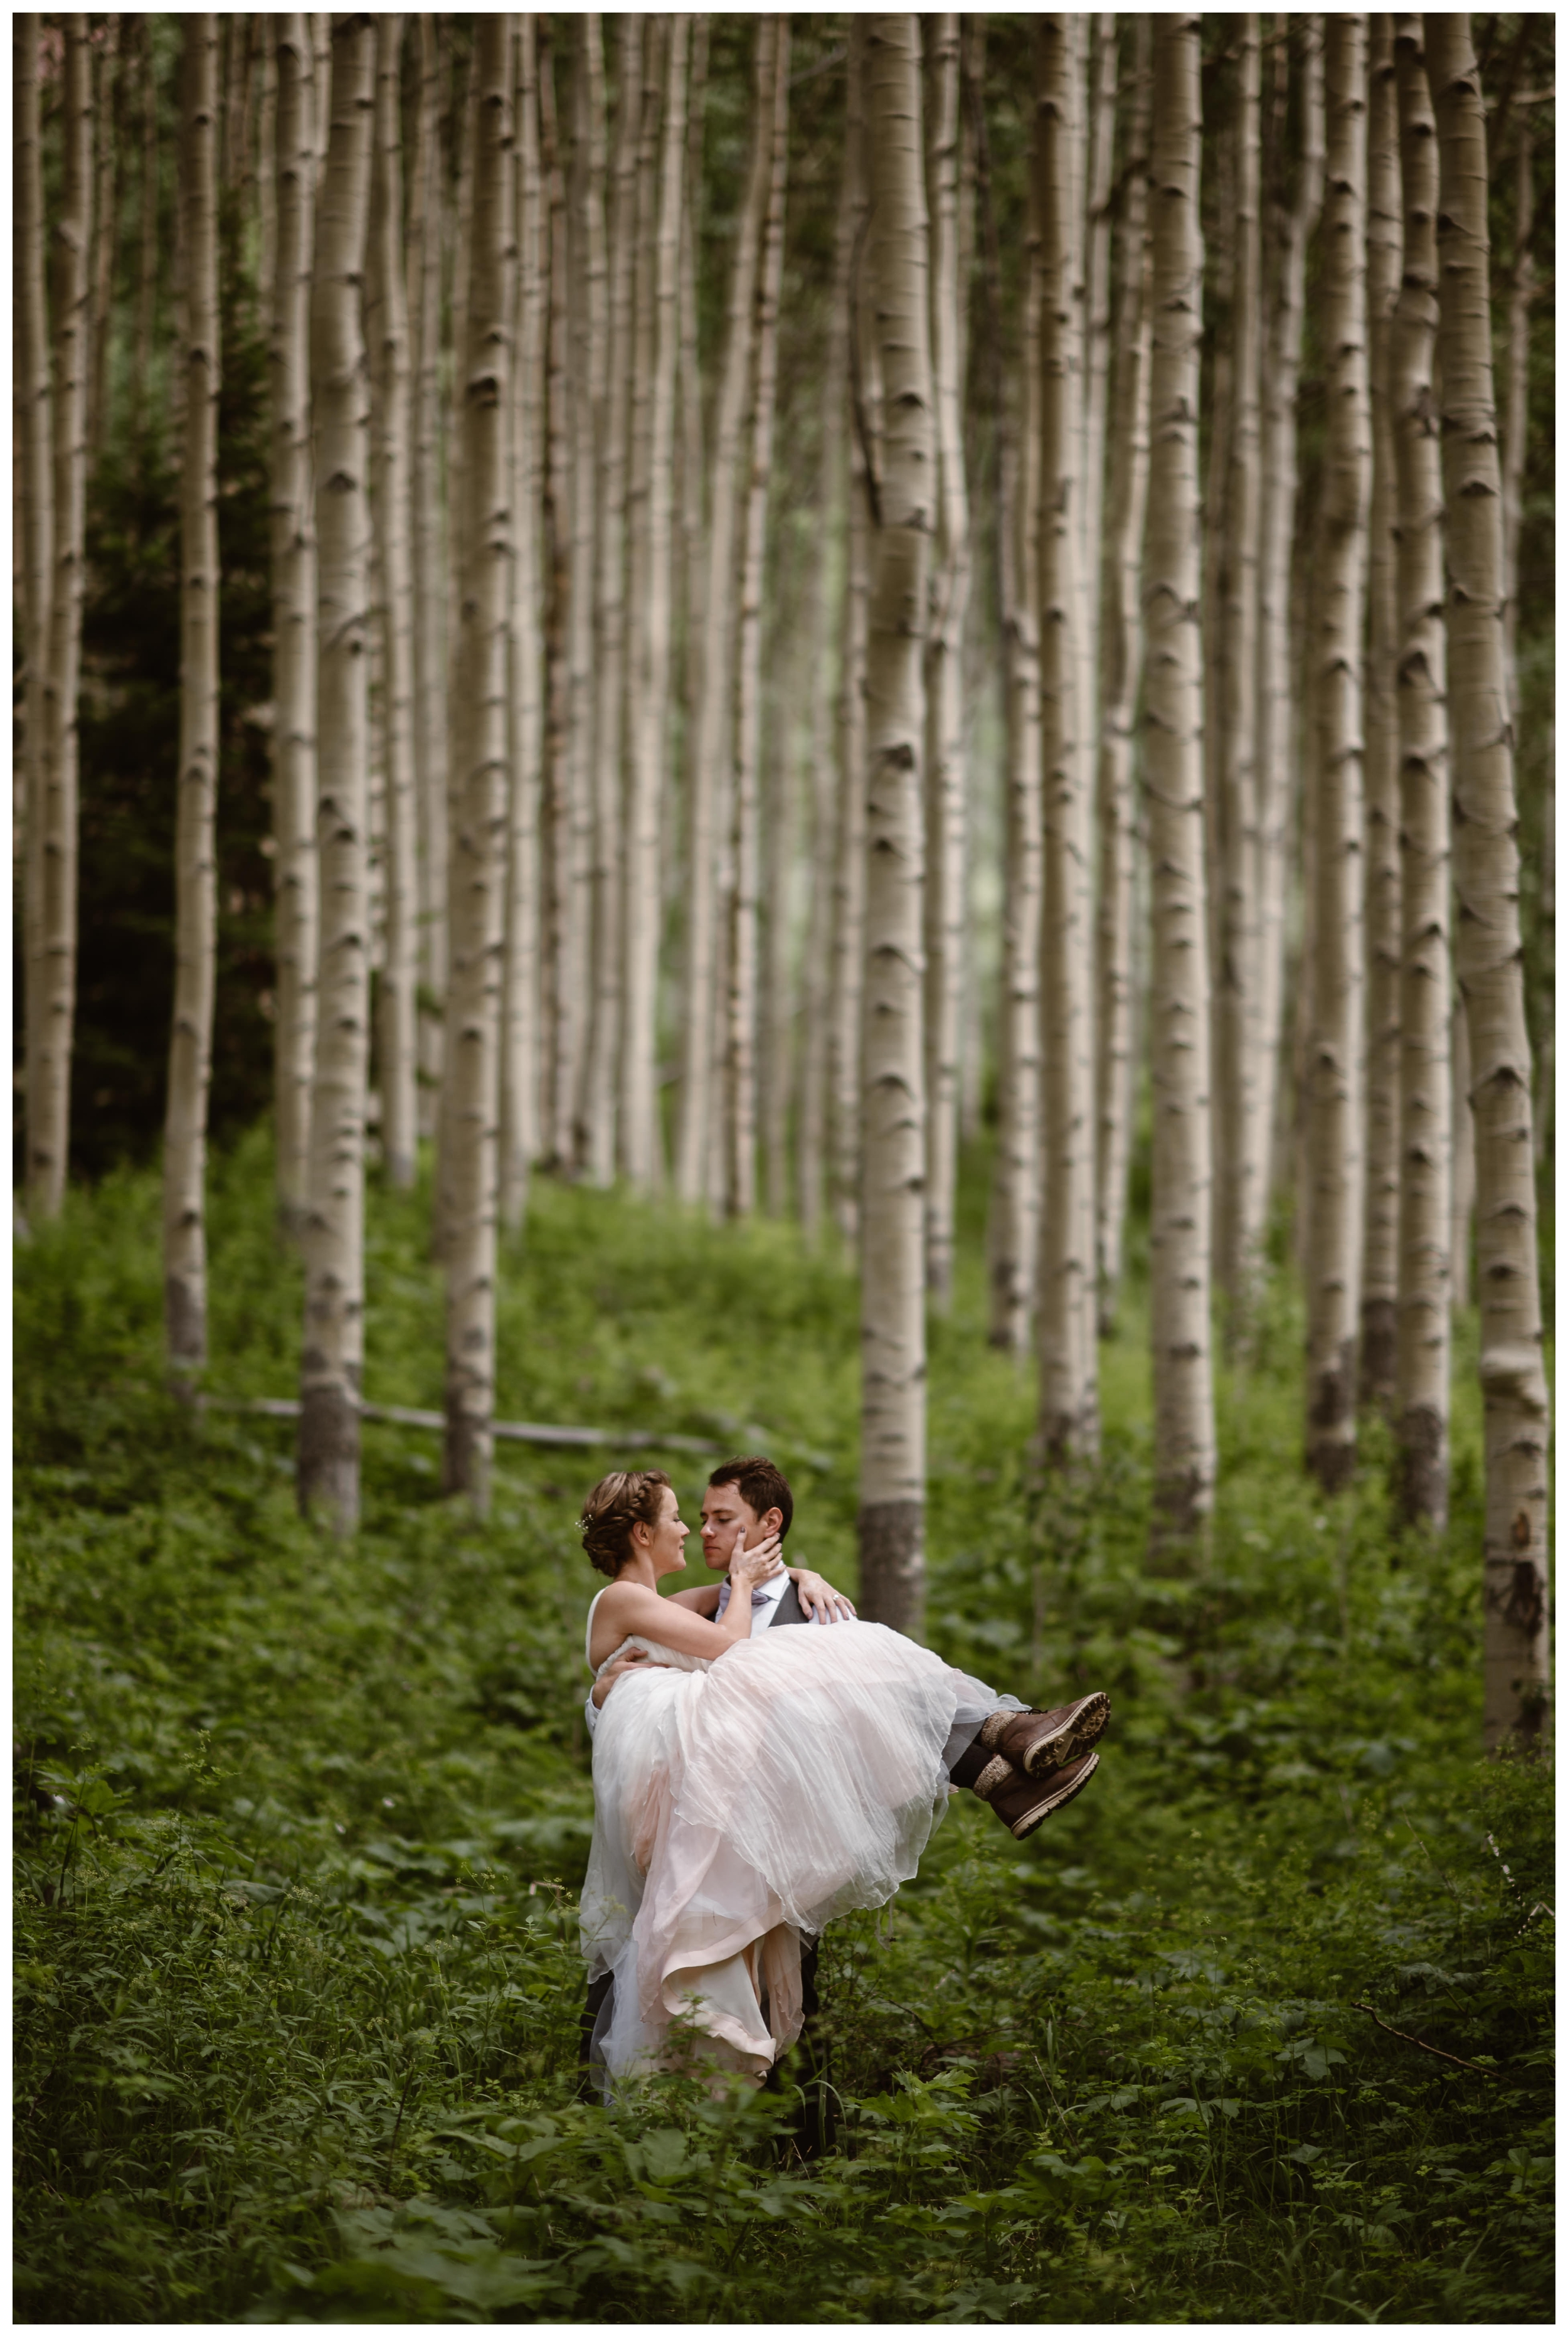 Marcela and Vasily embrace while surrounded by old aspen trees following their elopement ceremony at the top of Independence Pass outside Aspen, Coloardo. Photo by Maddie Mae, Adventure Instead.